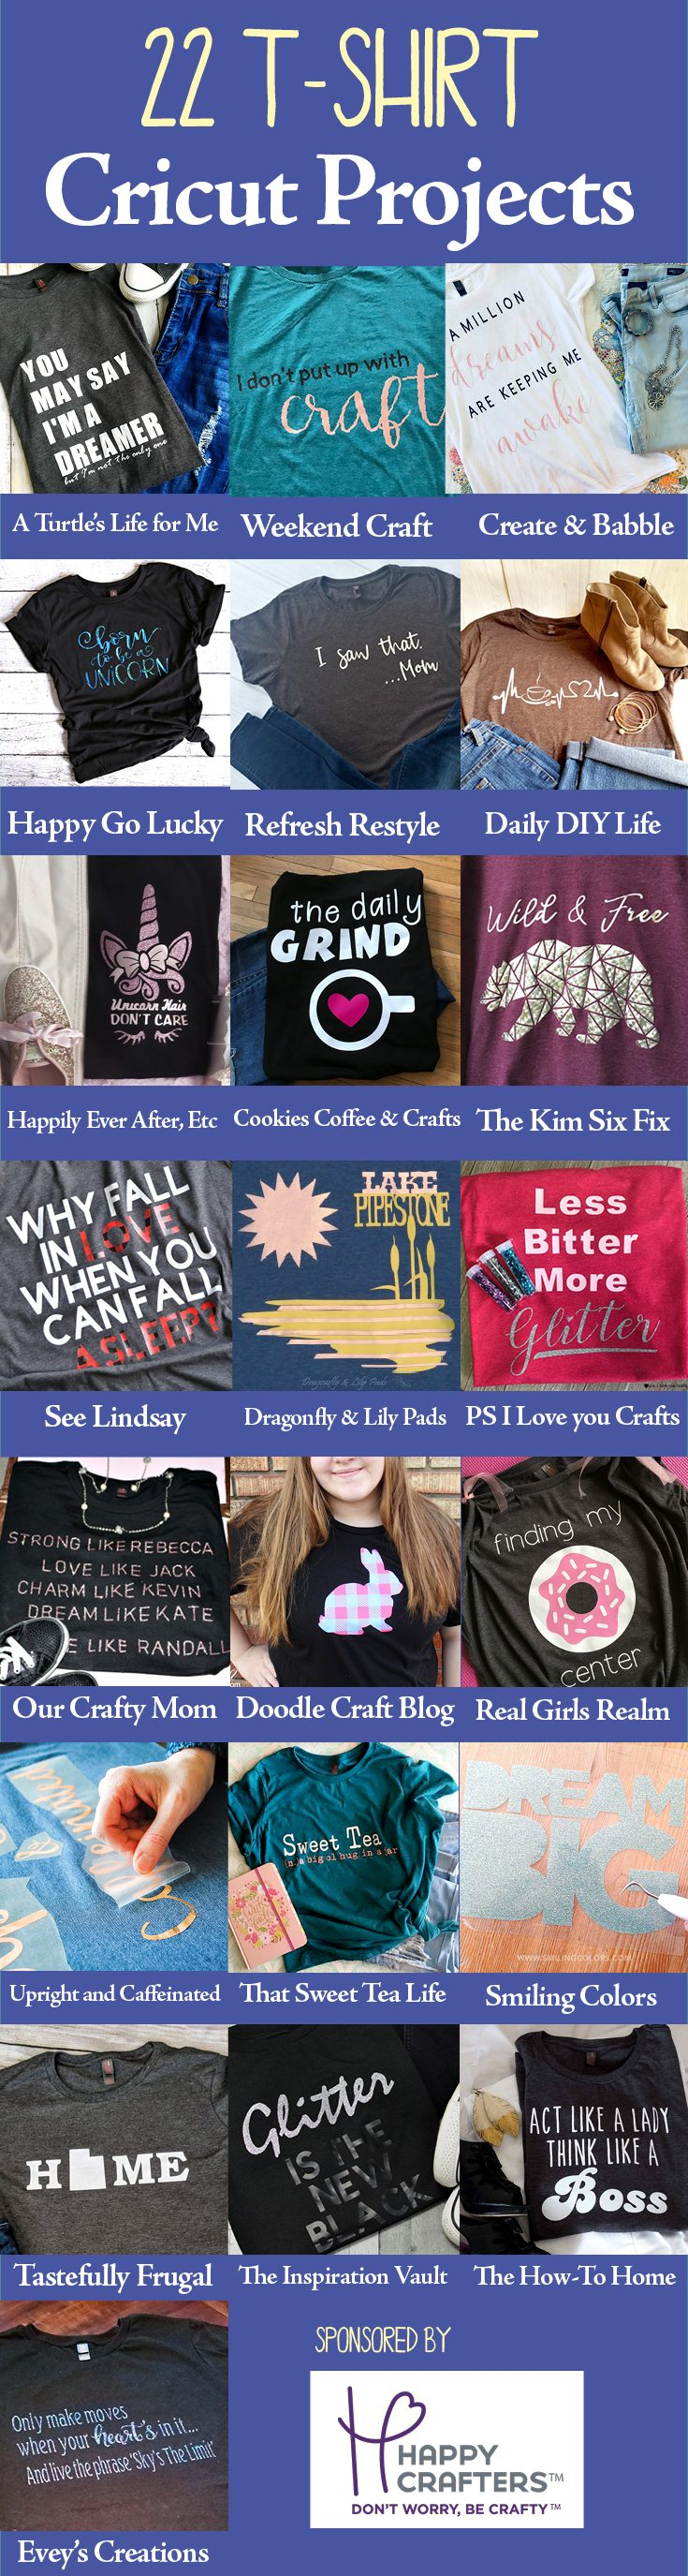 Cricut 22 ideas for fun t-shirts